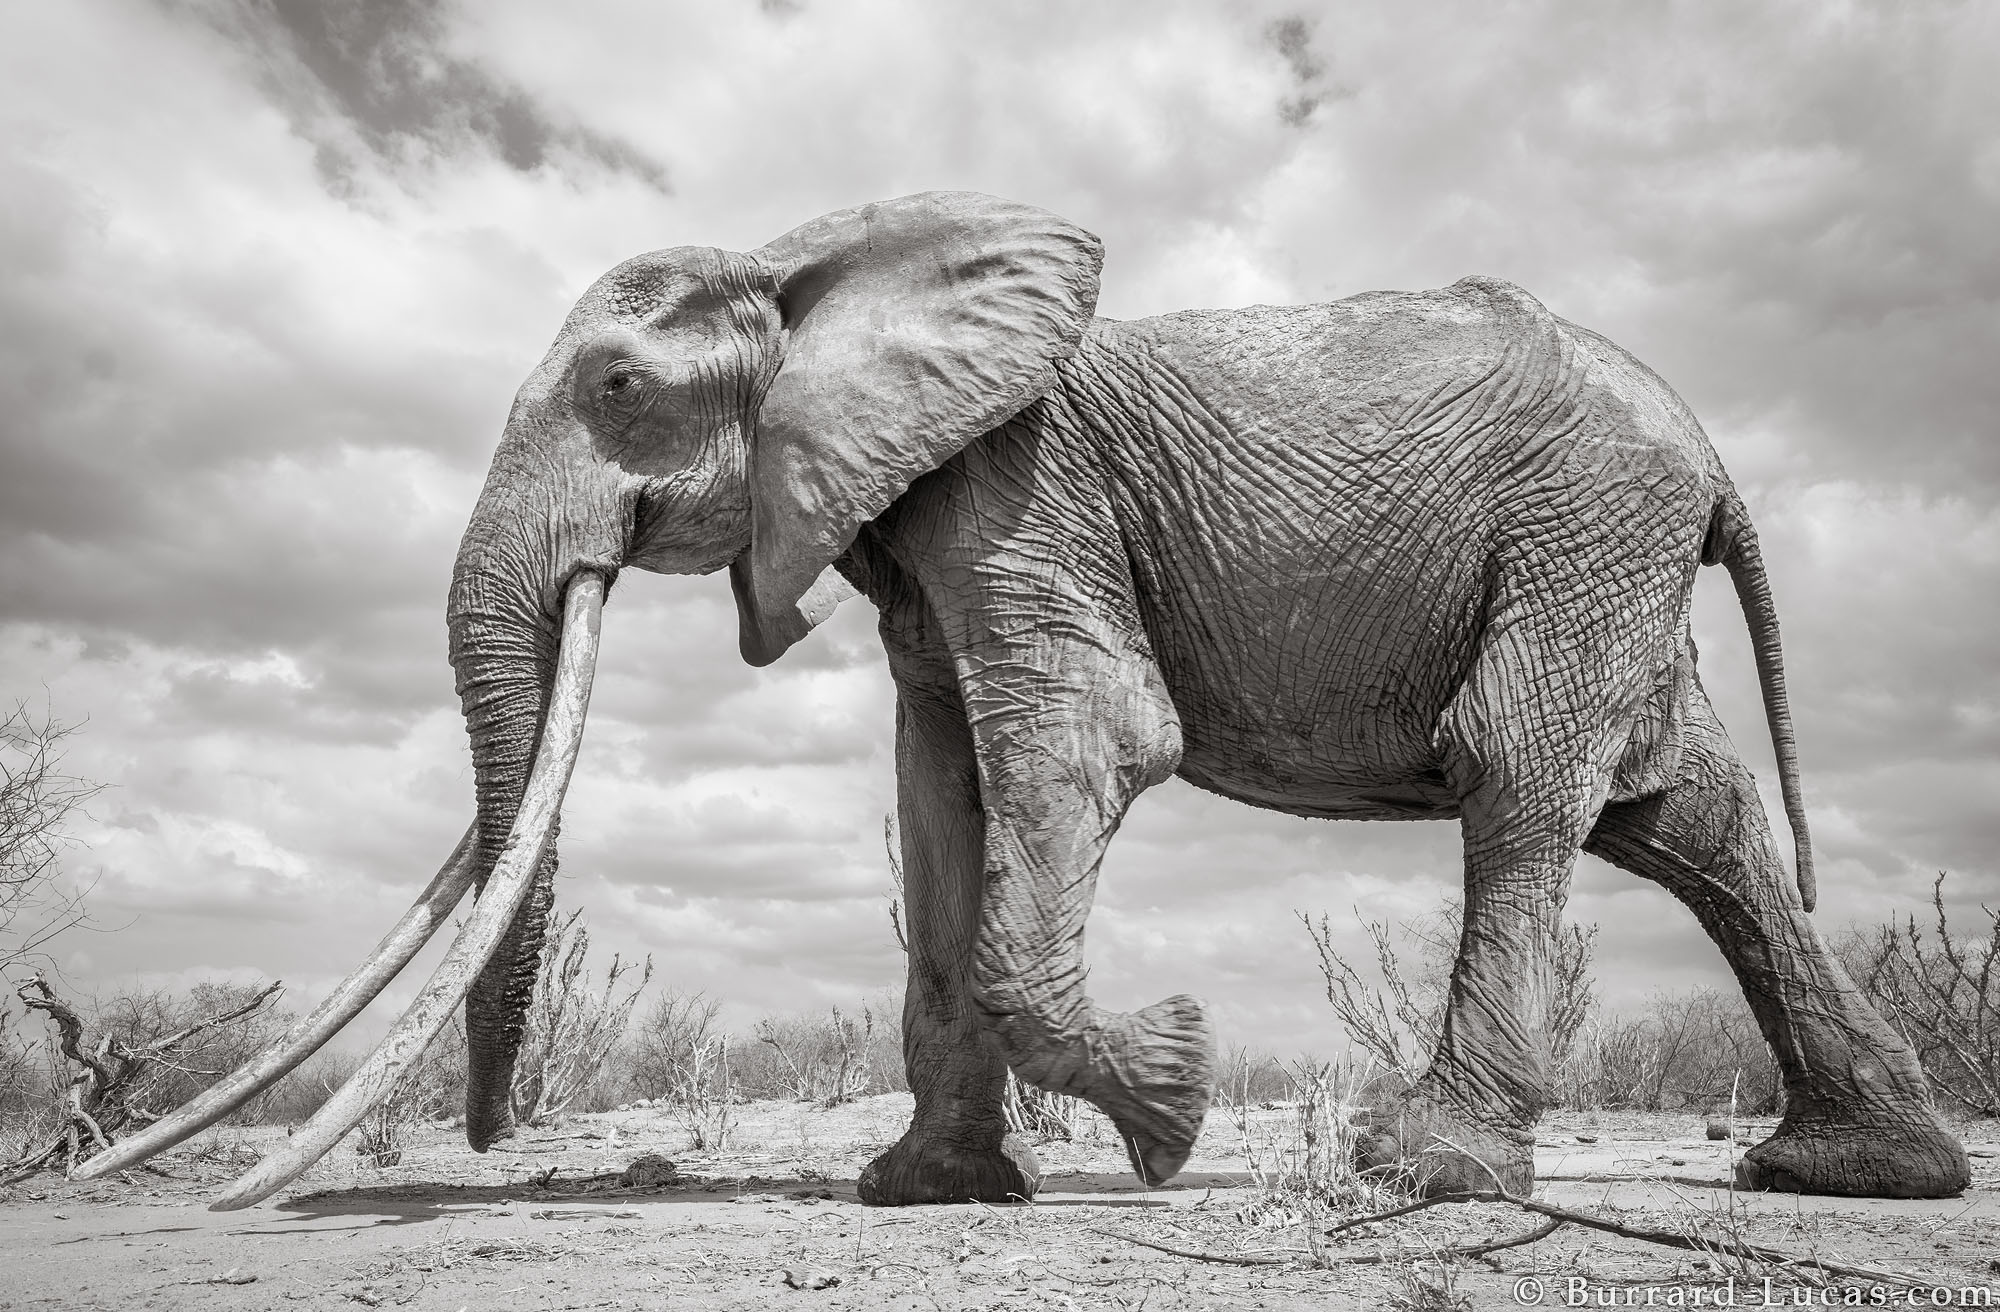 Last photographs of the Elephant Queen